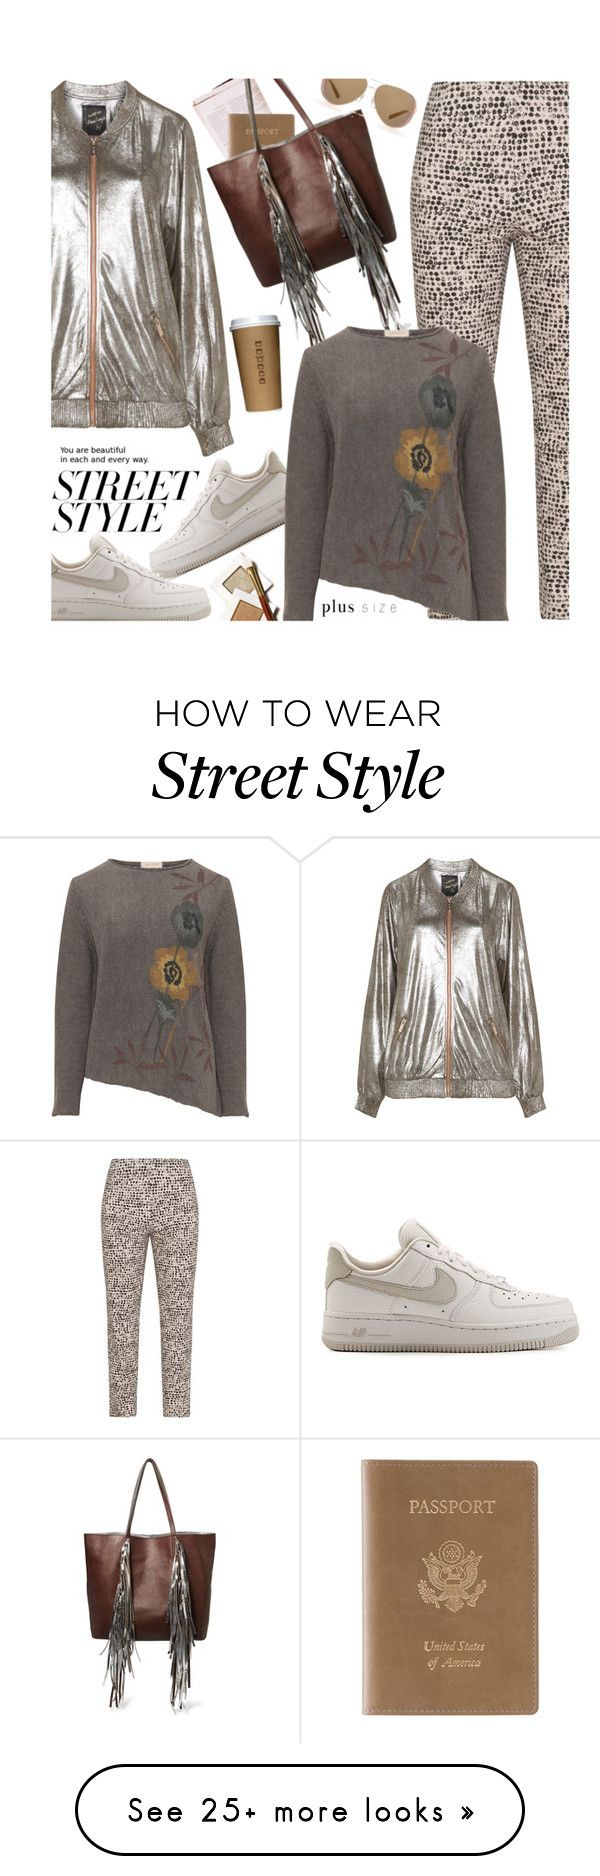 """Street Style (plus size)"" by beebeely-look on Polyvore featuring Sallie Sahne, Mat, NIKE, Royce Leather, Sara Battaglia, Isolde Roth, Michael Kors, StreetStyle, plussize and curvy"